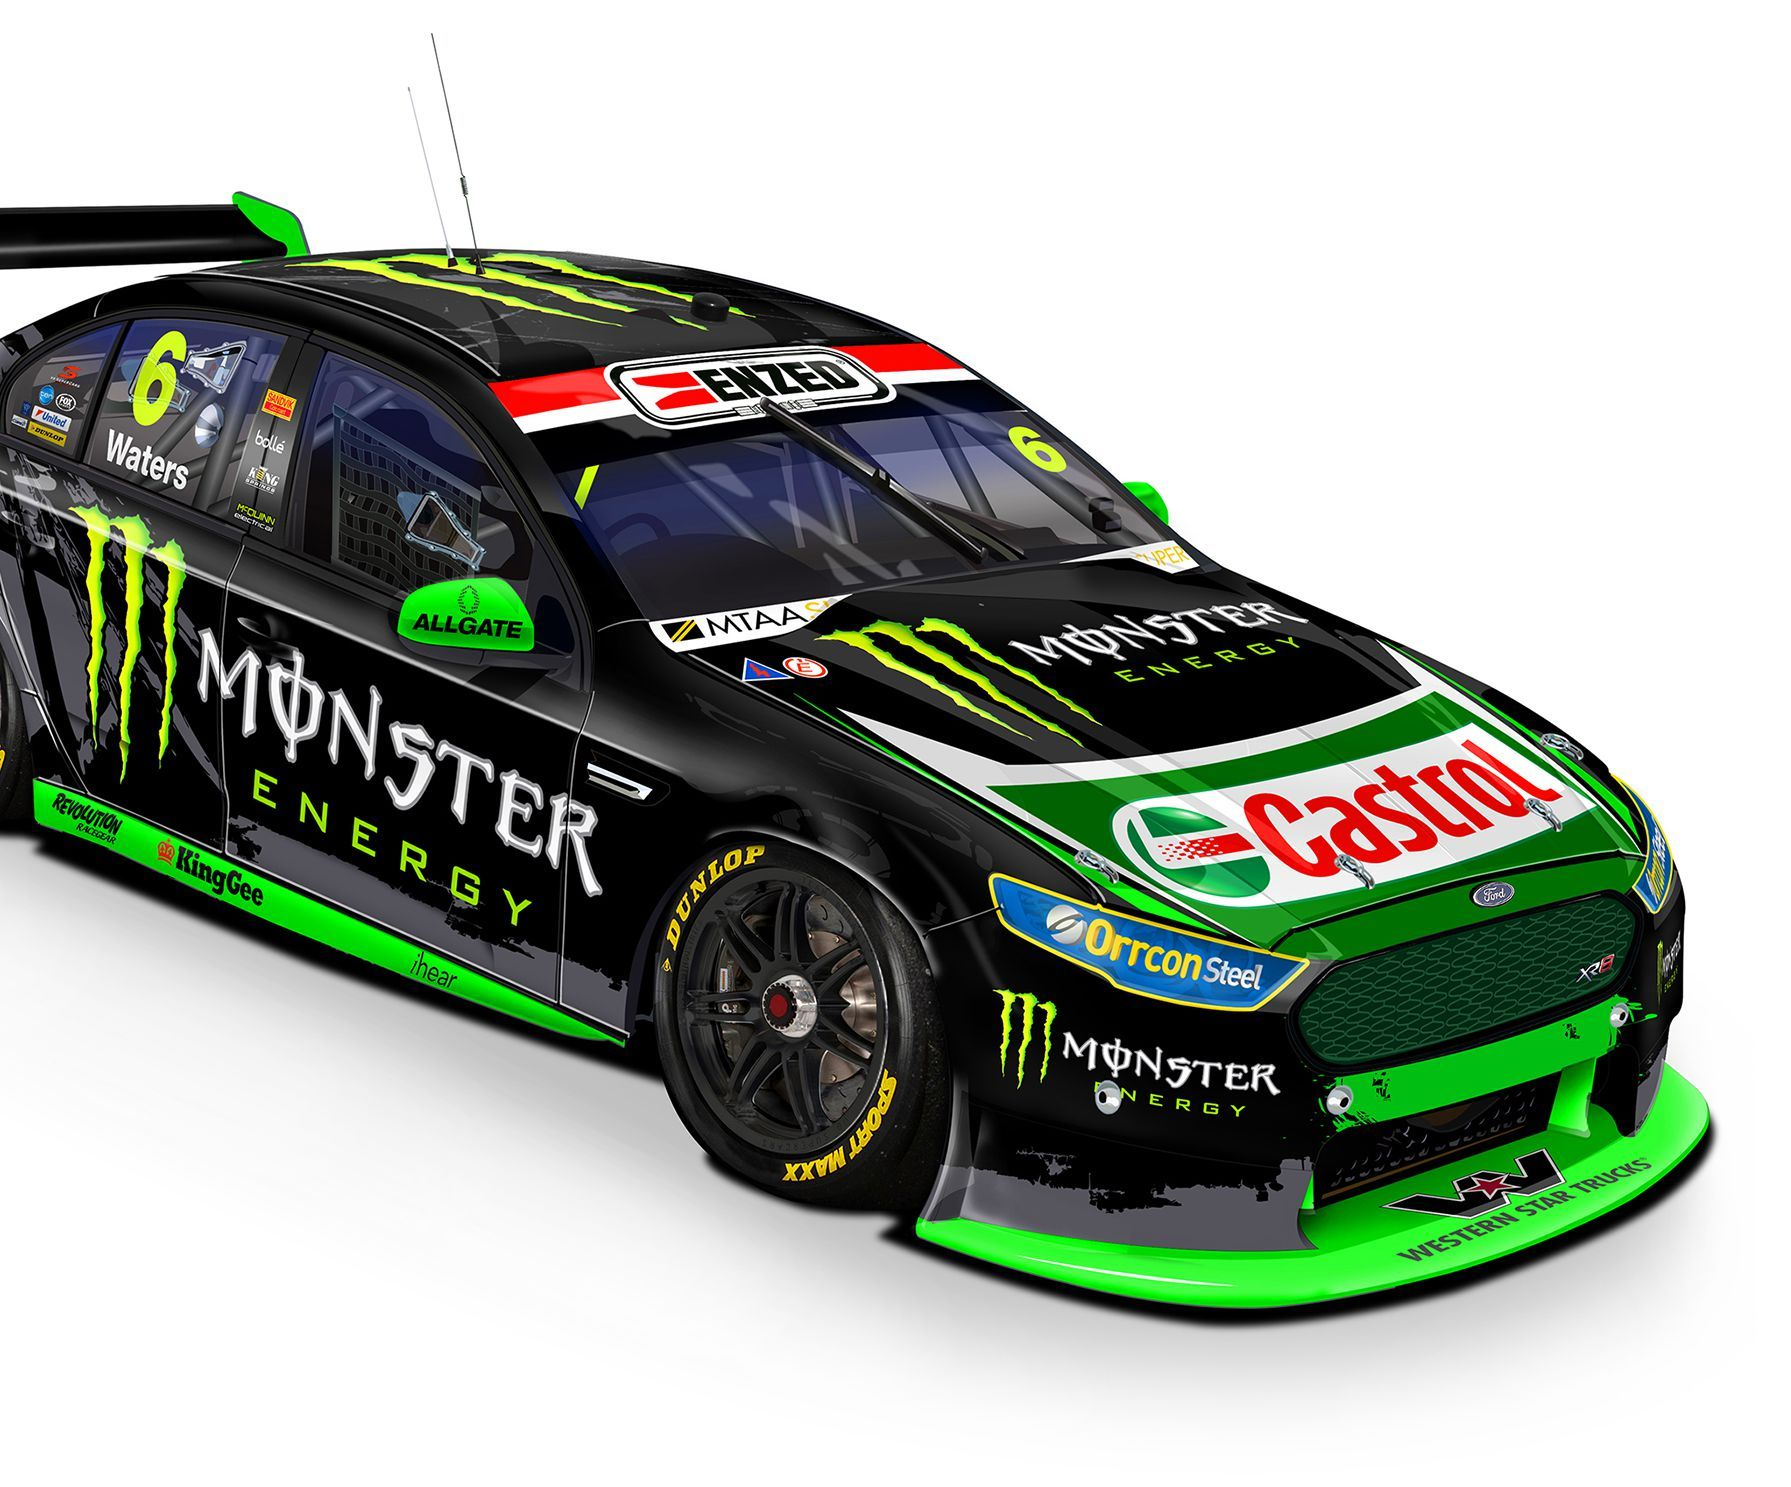 The Bottle O Racing Team And Monster Energy Racing V8 Supercars Super Cars V8 Supercars Australia Touring Car Racing